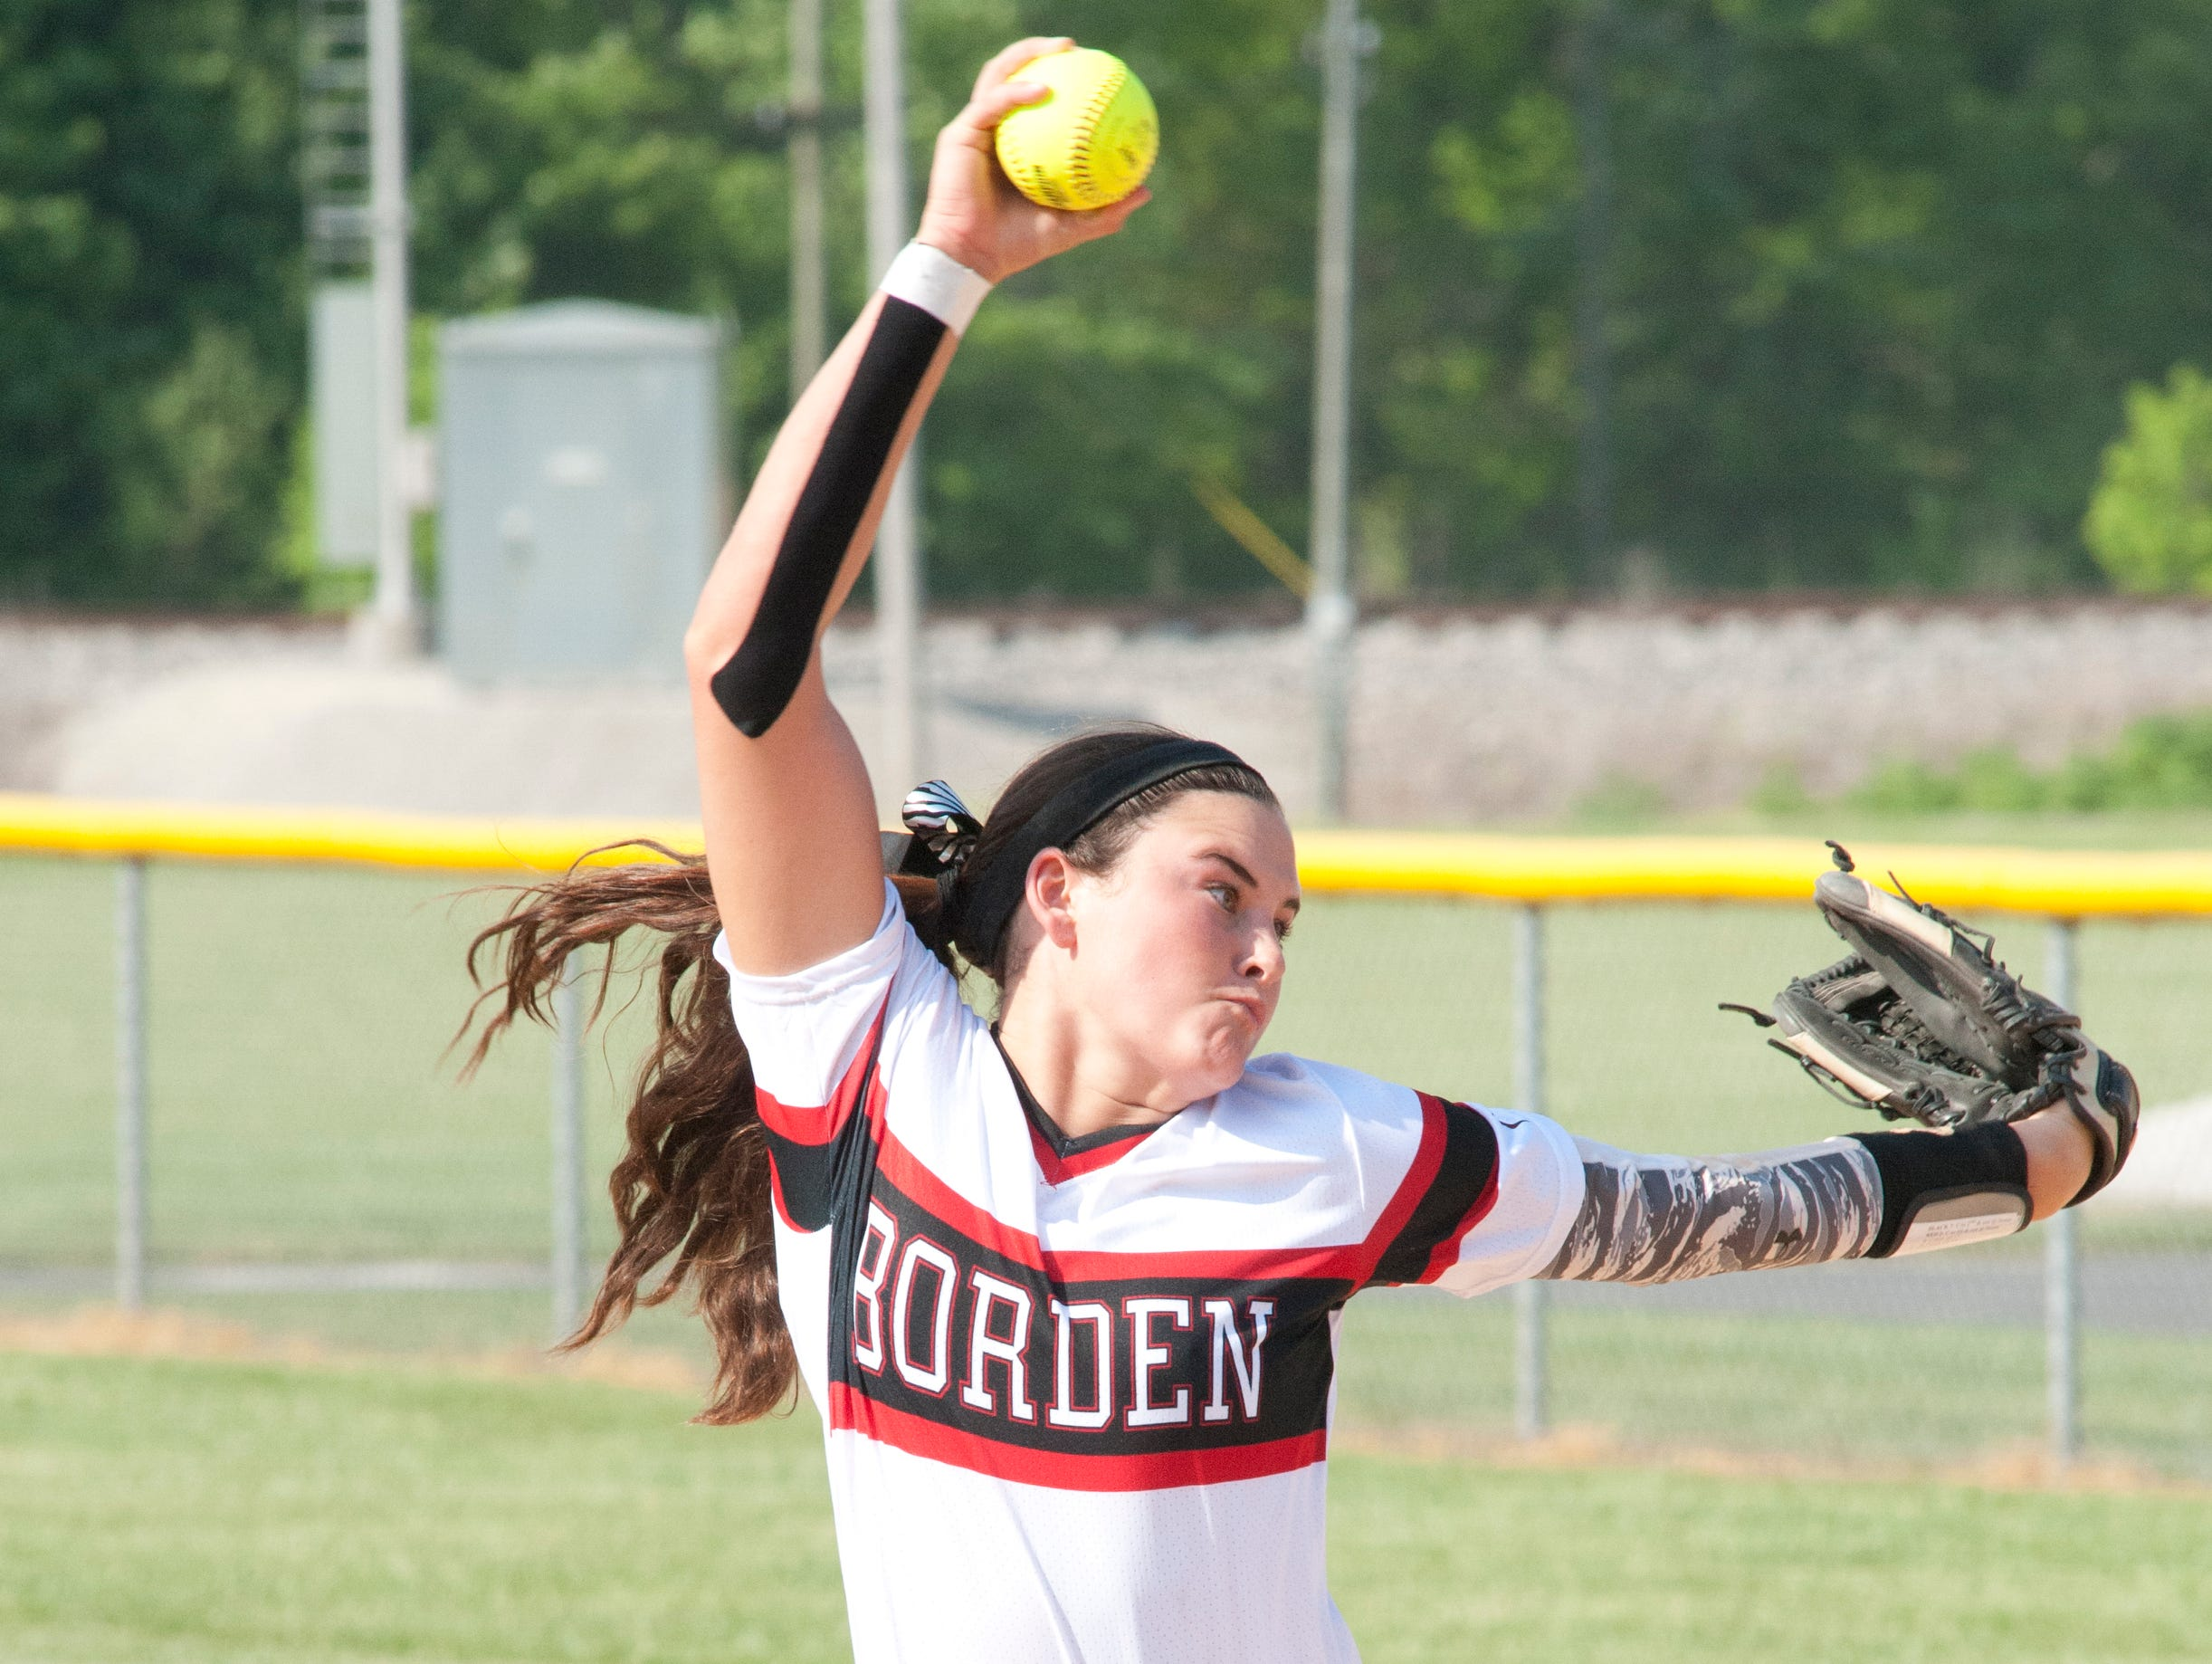 Borden Lady Braves starting pitcher Paige Schindler hurls the ball towards home plate. 07 May 2015